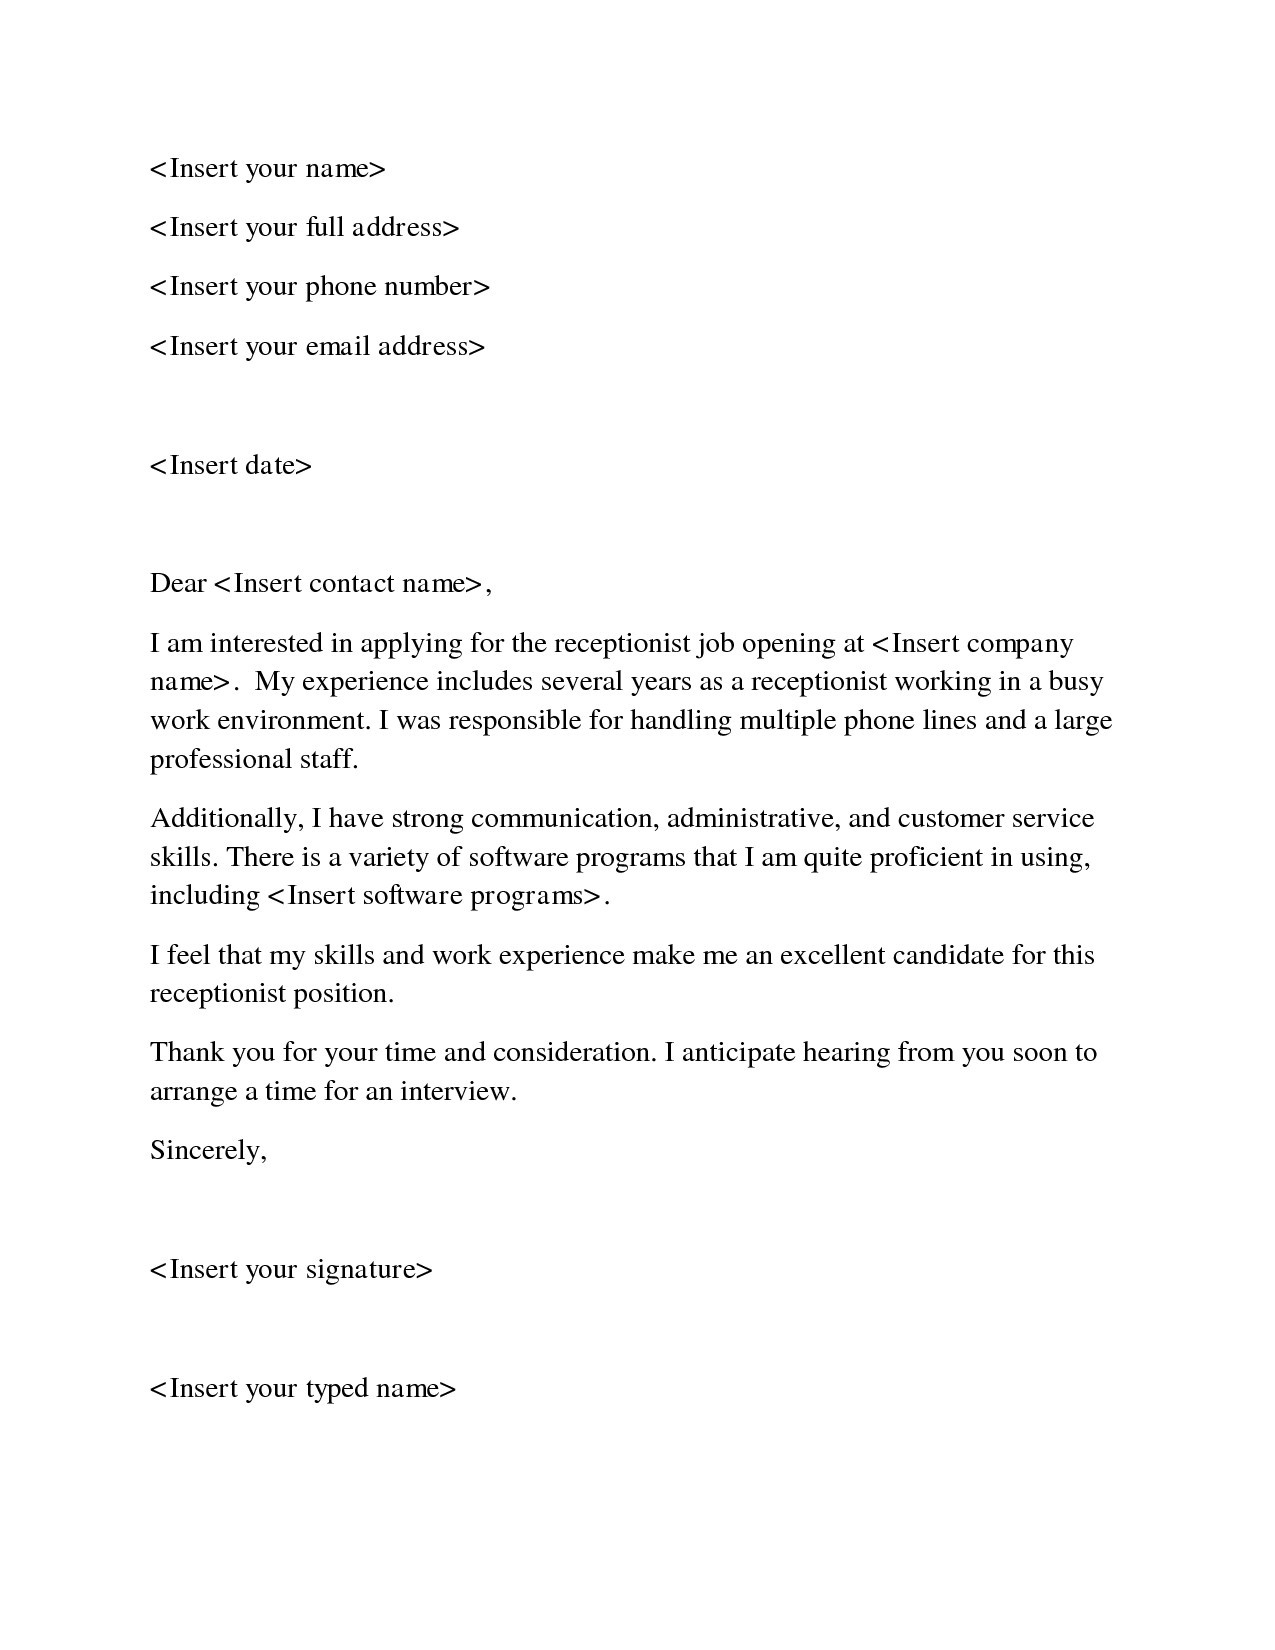 How to Create A Cover Letter Template - Examples Cover Letters for Administrative Positions Elegant New